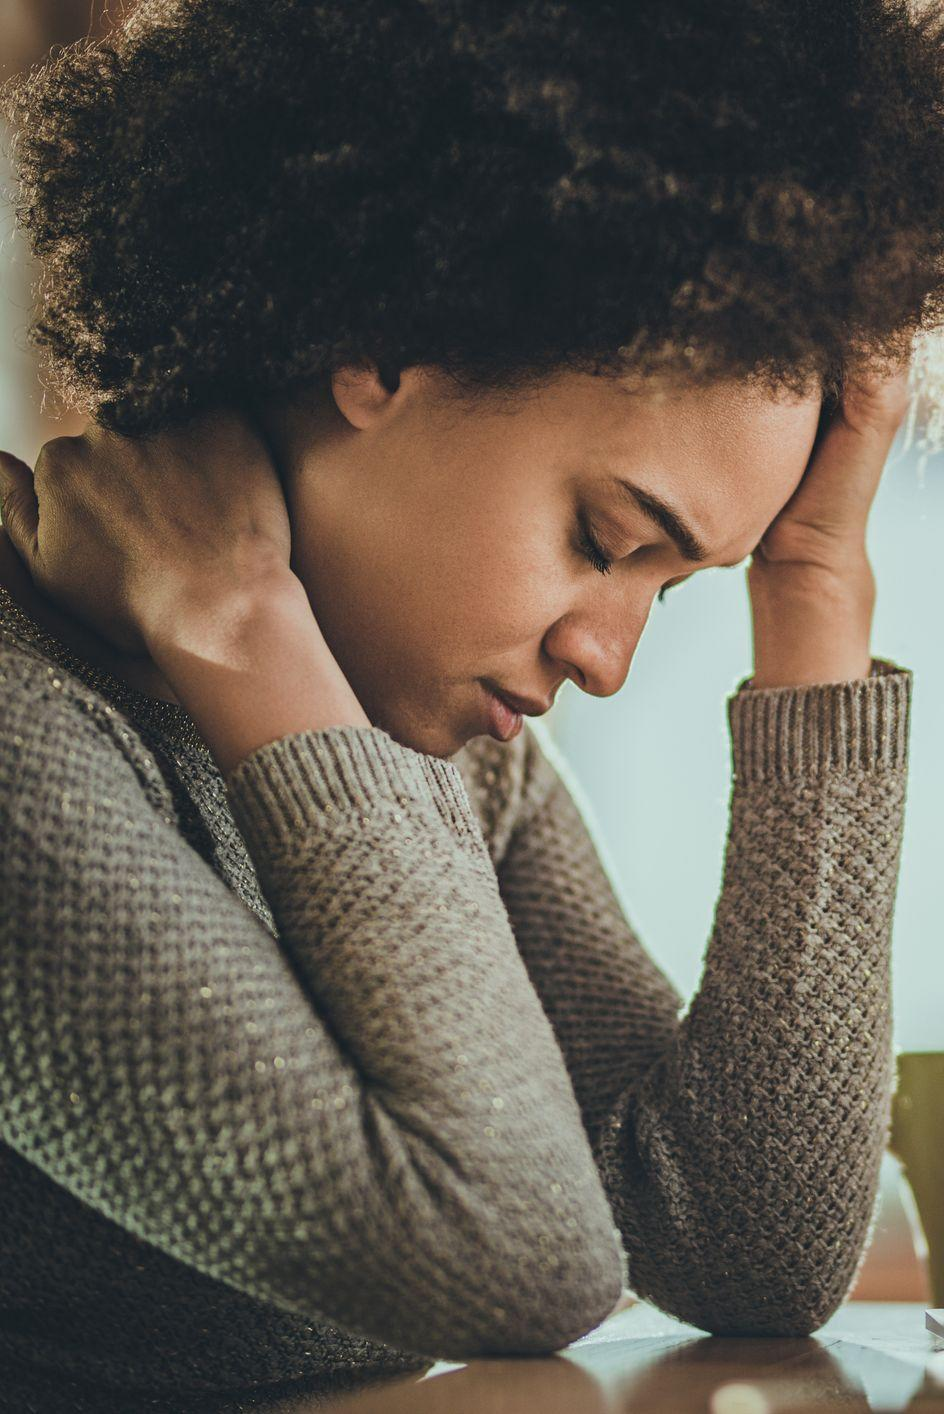 """<p>It's no secret that psychological difficulties can result in physical manifestations of the problem, and midlife crises are no different. Headaches and gastrointestinal issues that don't seem to have any physical cause, and more often than not don't respond to usual medical are <a href=""""https://newsnetwork.mayoclinic.org/discussion/myth-or-fact-could-you-be-going-through-a-midlife-crisis/"""" rel=""""nofollow noopener"""" target=""""_blank"""" data-ylk=""""slk:often linked to this kind of emotional crisis"""" class=""""link rapid-noclick-resp"""">often linked to this kind of emotional crisis</a>, according to <em>Mayo Clinic</em>. </p><p>In an article for the <em>Los Angeles Times, </em>Dr. Yolanda Reid Chassiakos chronicles a patient who began <a href=""""https://www.latimes.com/archives/la-xpm-2011-may-16-la-he-in-practice-midlife-20110516-story.html"""" rel=""""nofollow noopener"""" target=""""_blank"""" data-ylk=""""slk:experiencing physical symptoms"""" class=""""link rapid-noclick-resp"""">experiencing physical symptoms</a>, most notably intense migraines, due to the stressors she was feeling at mid-age. </p><p>Chassiakos concludes that she recommended a combination of prescription-strength medication to help alleviate the migraines, and professional counseling. </p>"""